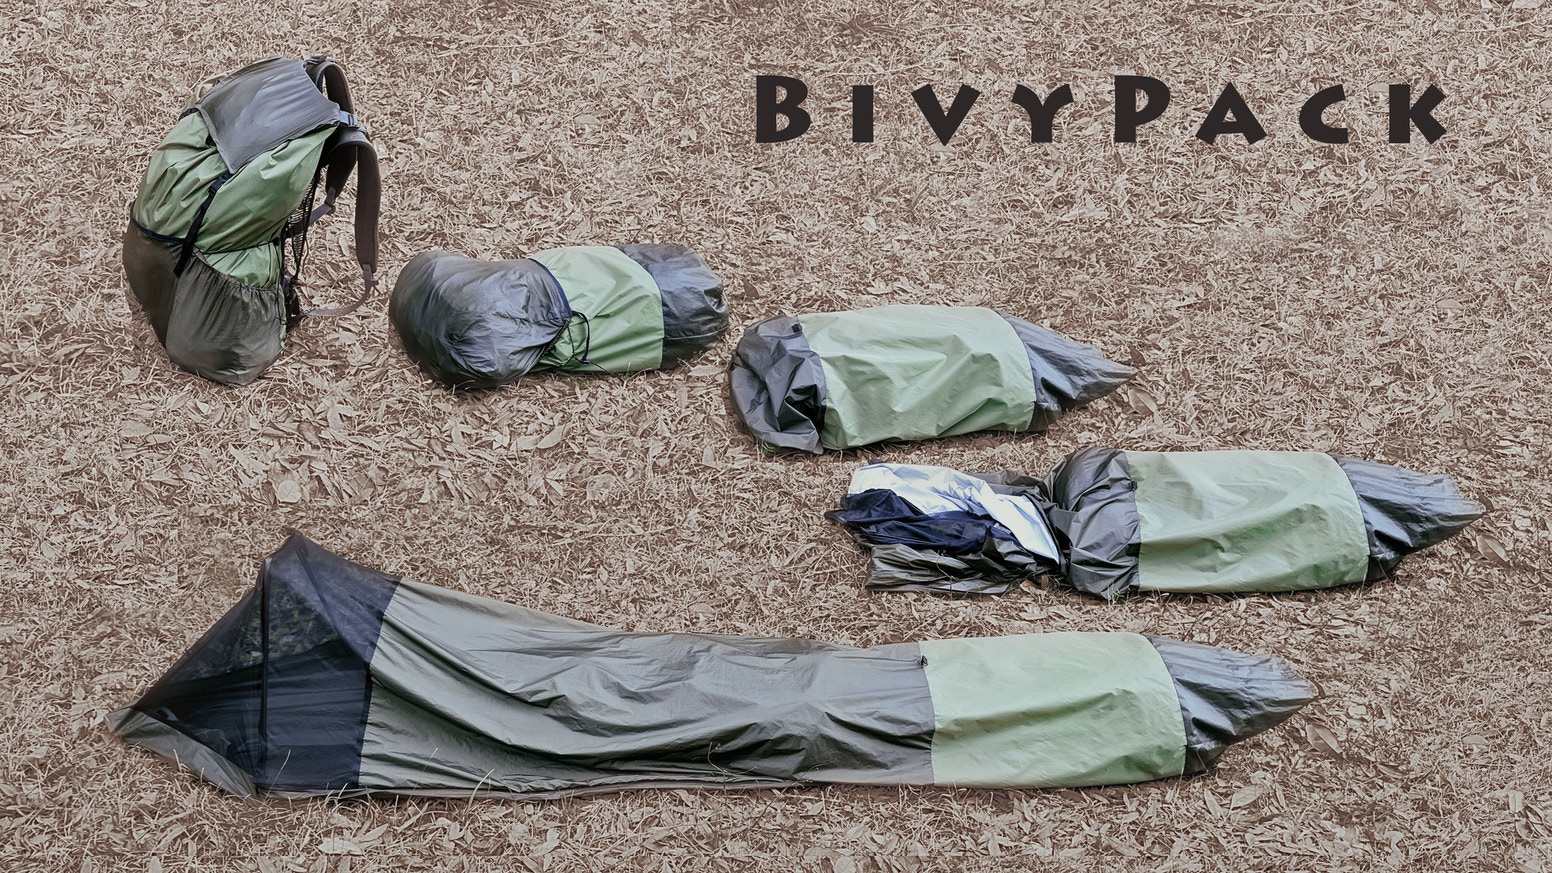 bivypack the backpack that transforms into a bivy tent by kenny